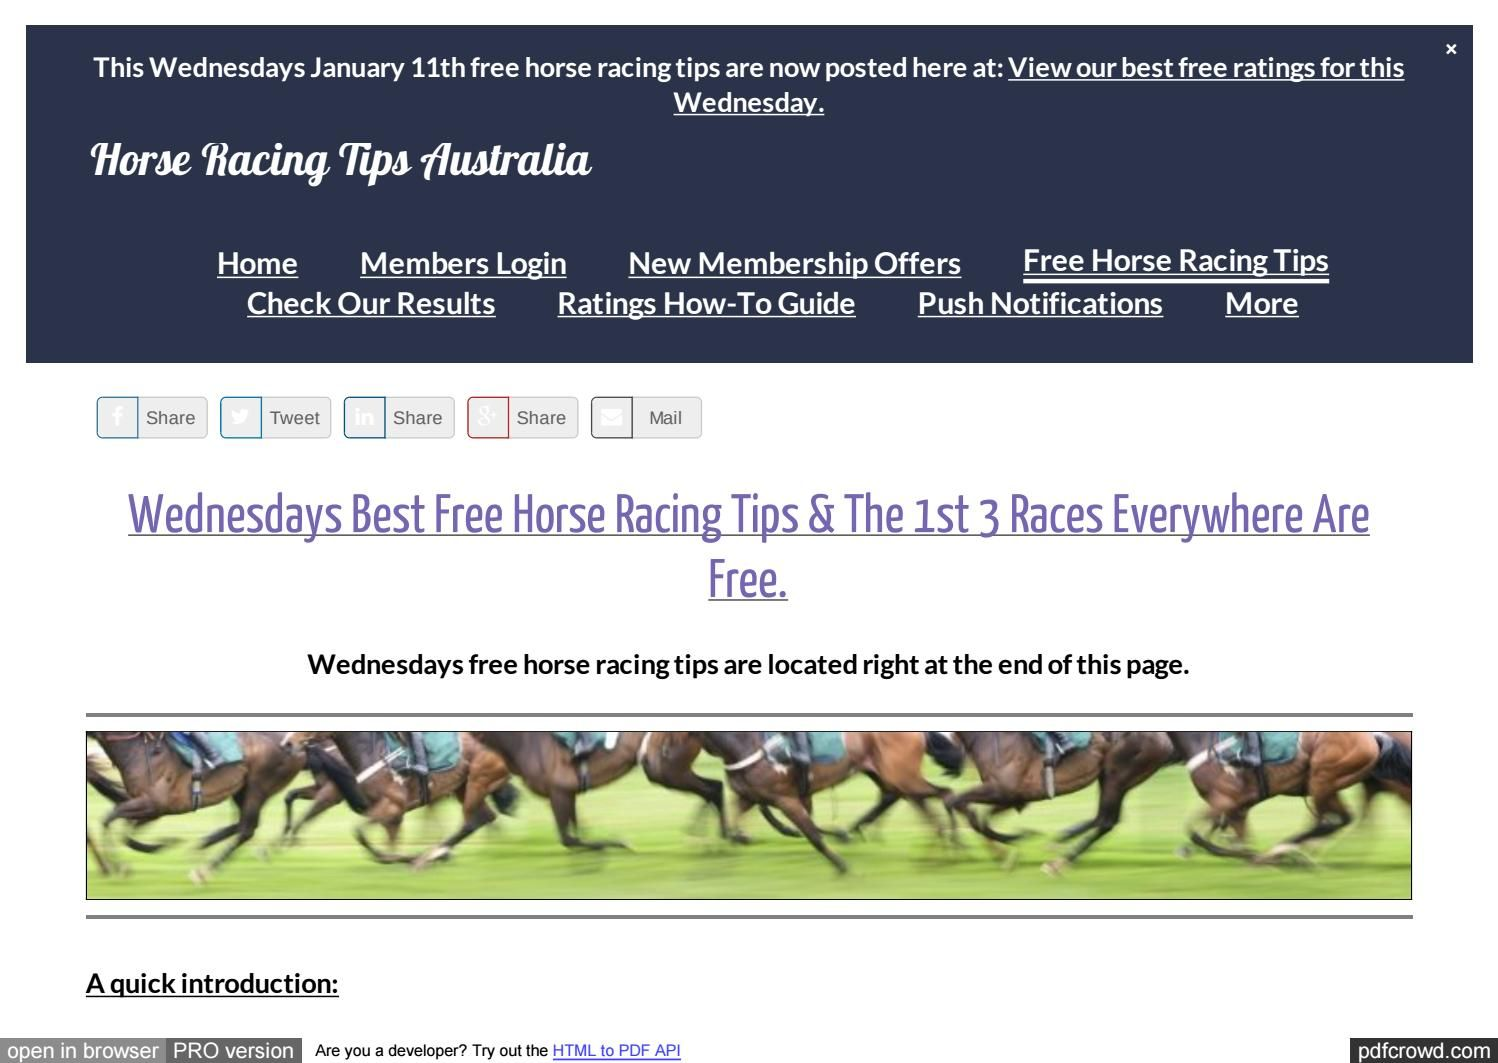 Wednesdays January 11th Free Horse Racing Tips